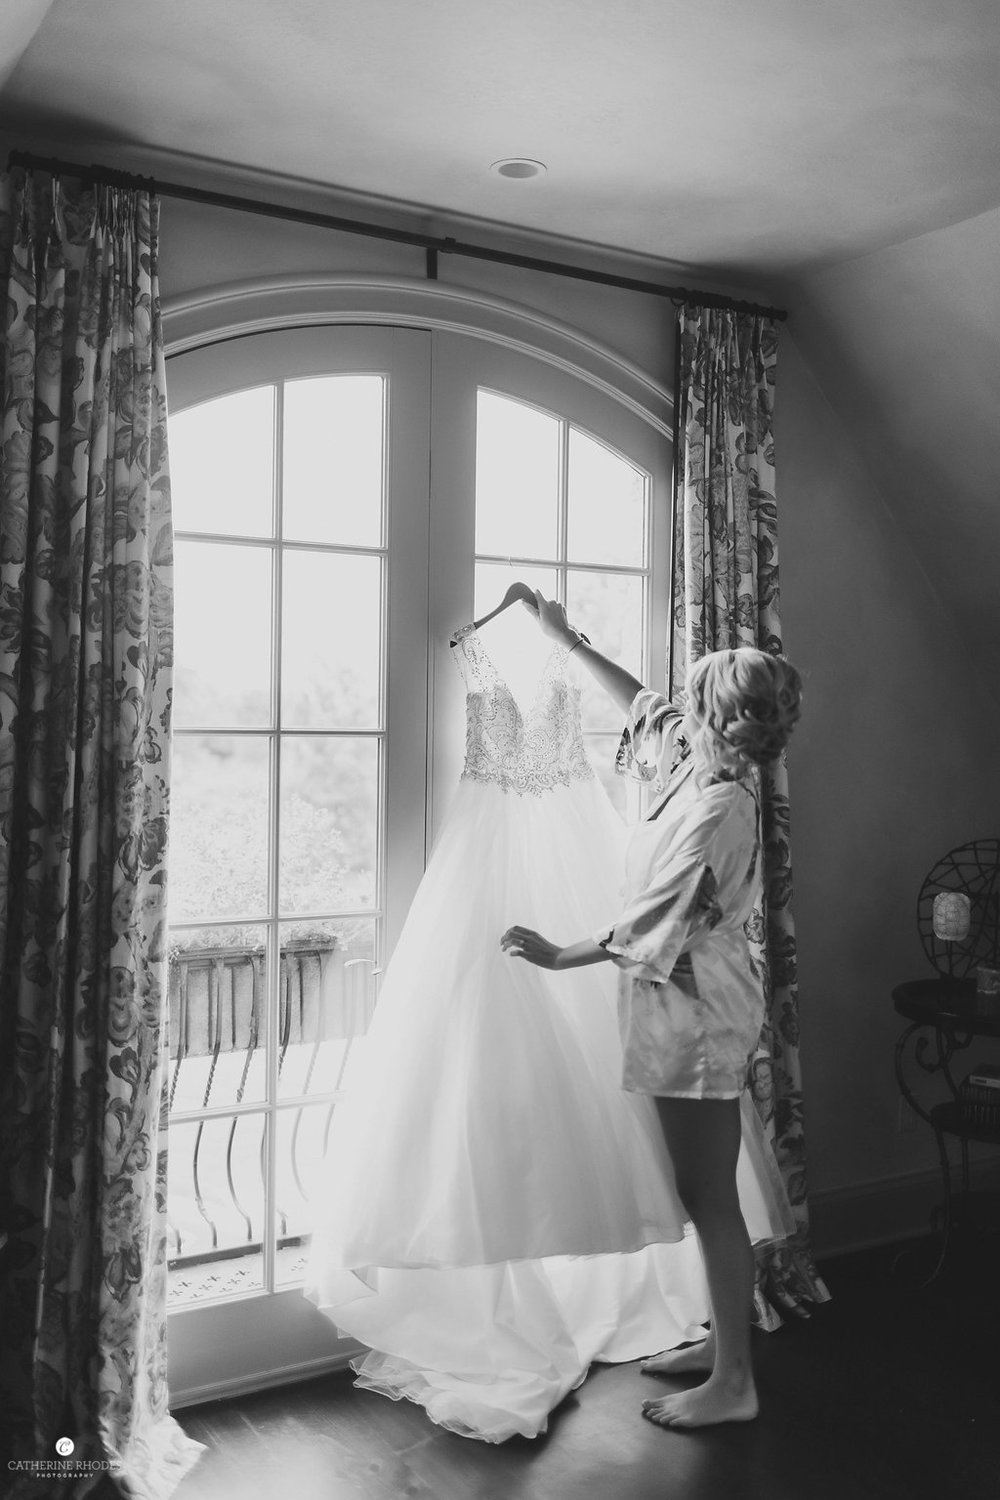 KimballBallroomWedding_GettingReady_KenzieDrew_Portraits_Catherinerhodesphotography(41of190)-Edit.jpg